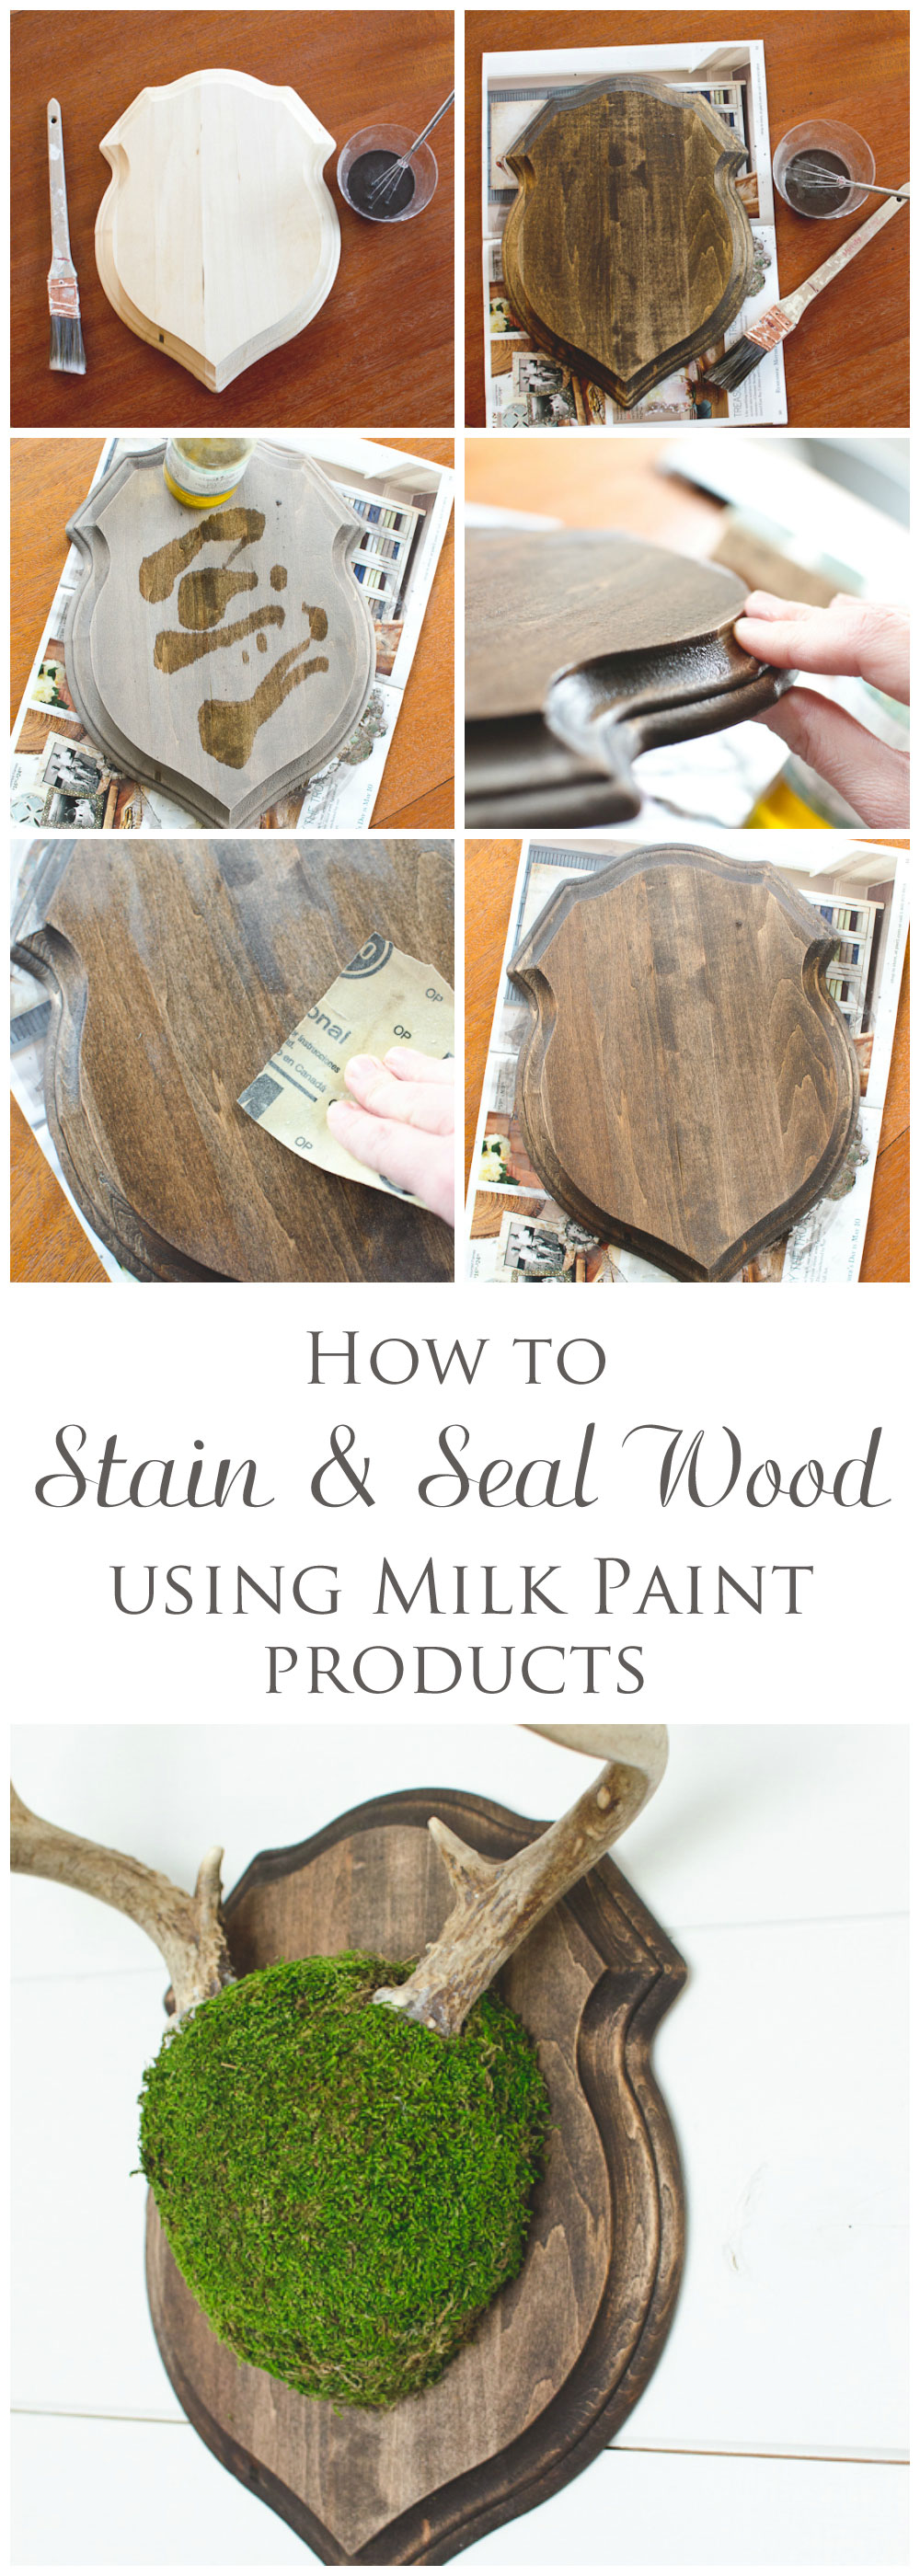 How to stain & seal wood using milk paint products - via thegoldensycamore.com